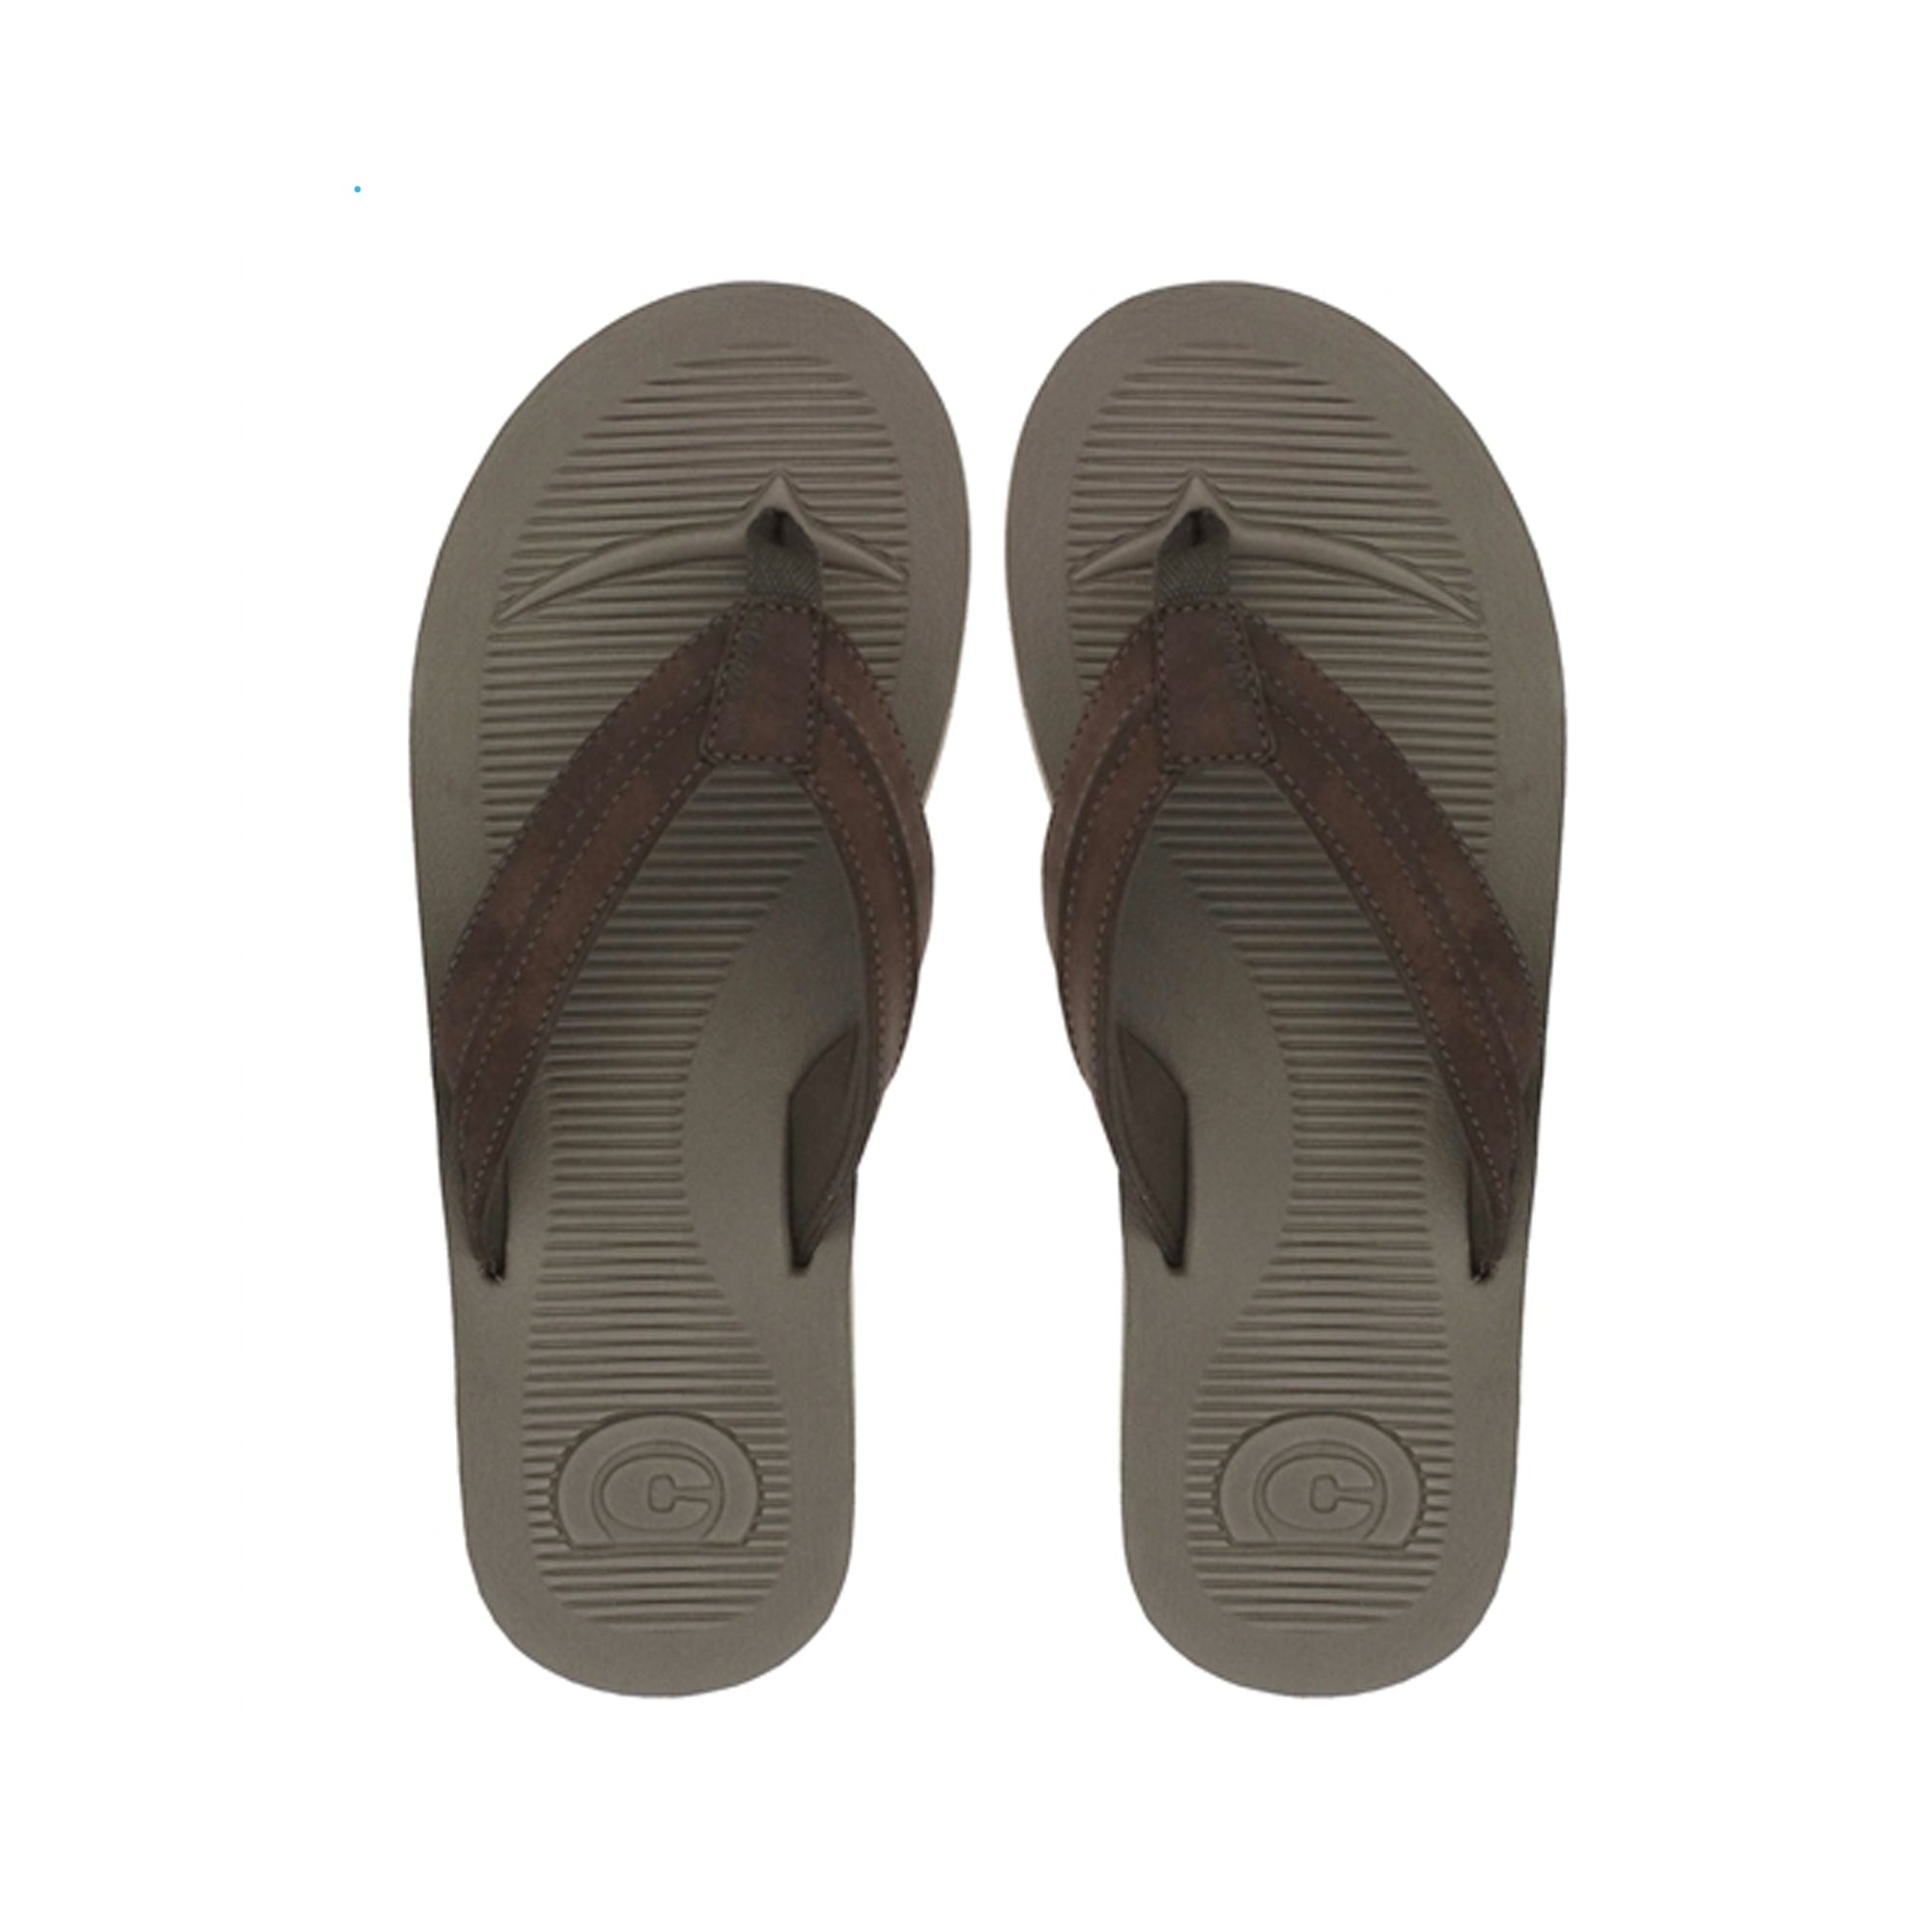 Cobian Ridgeline Men's Sandals